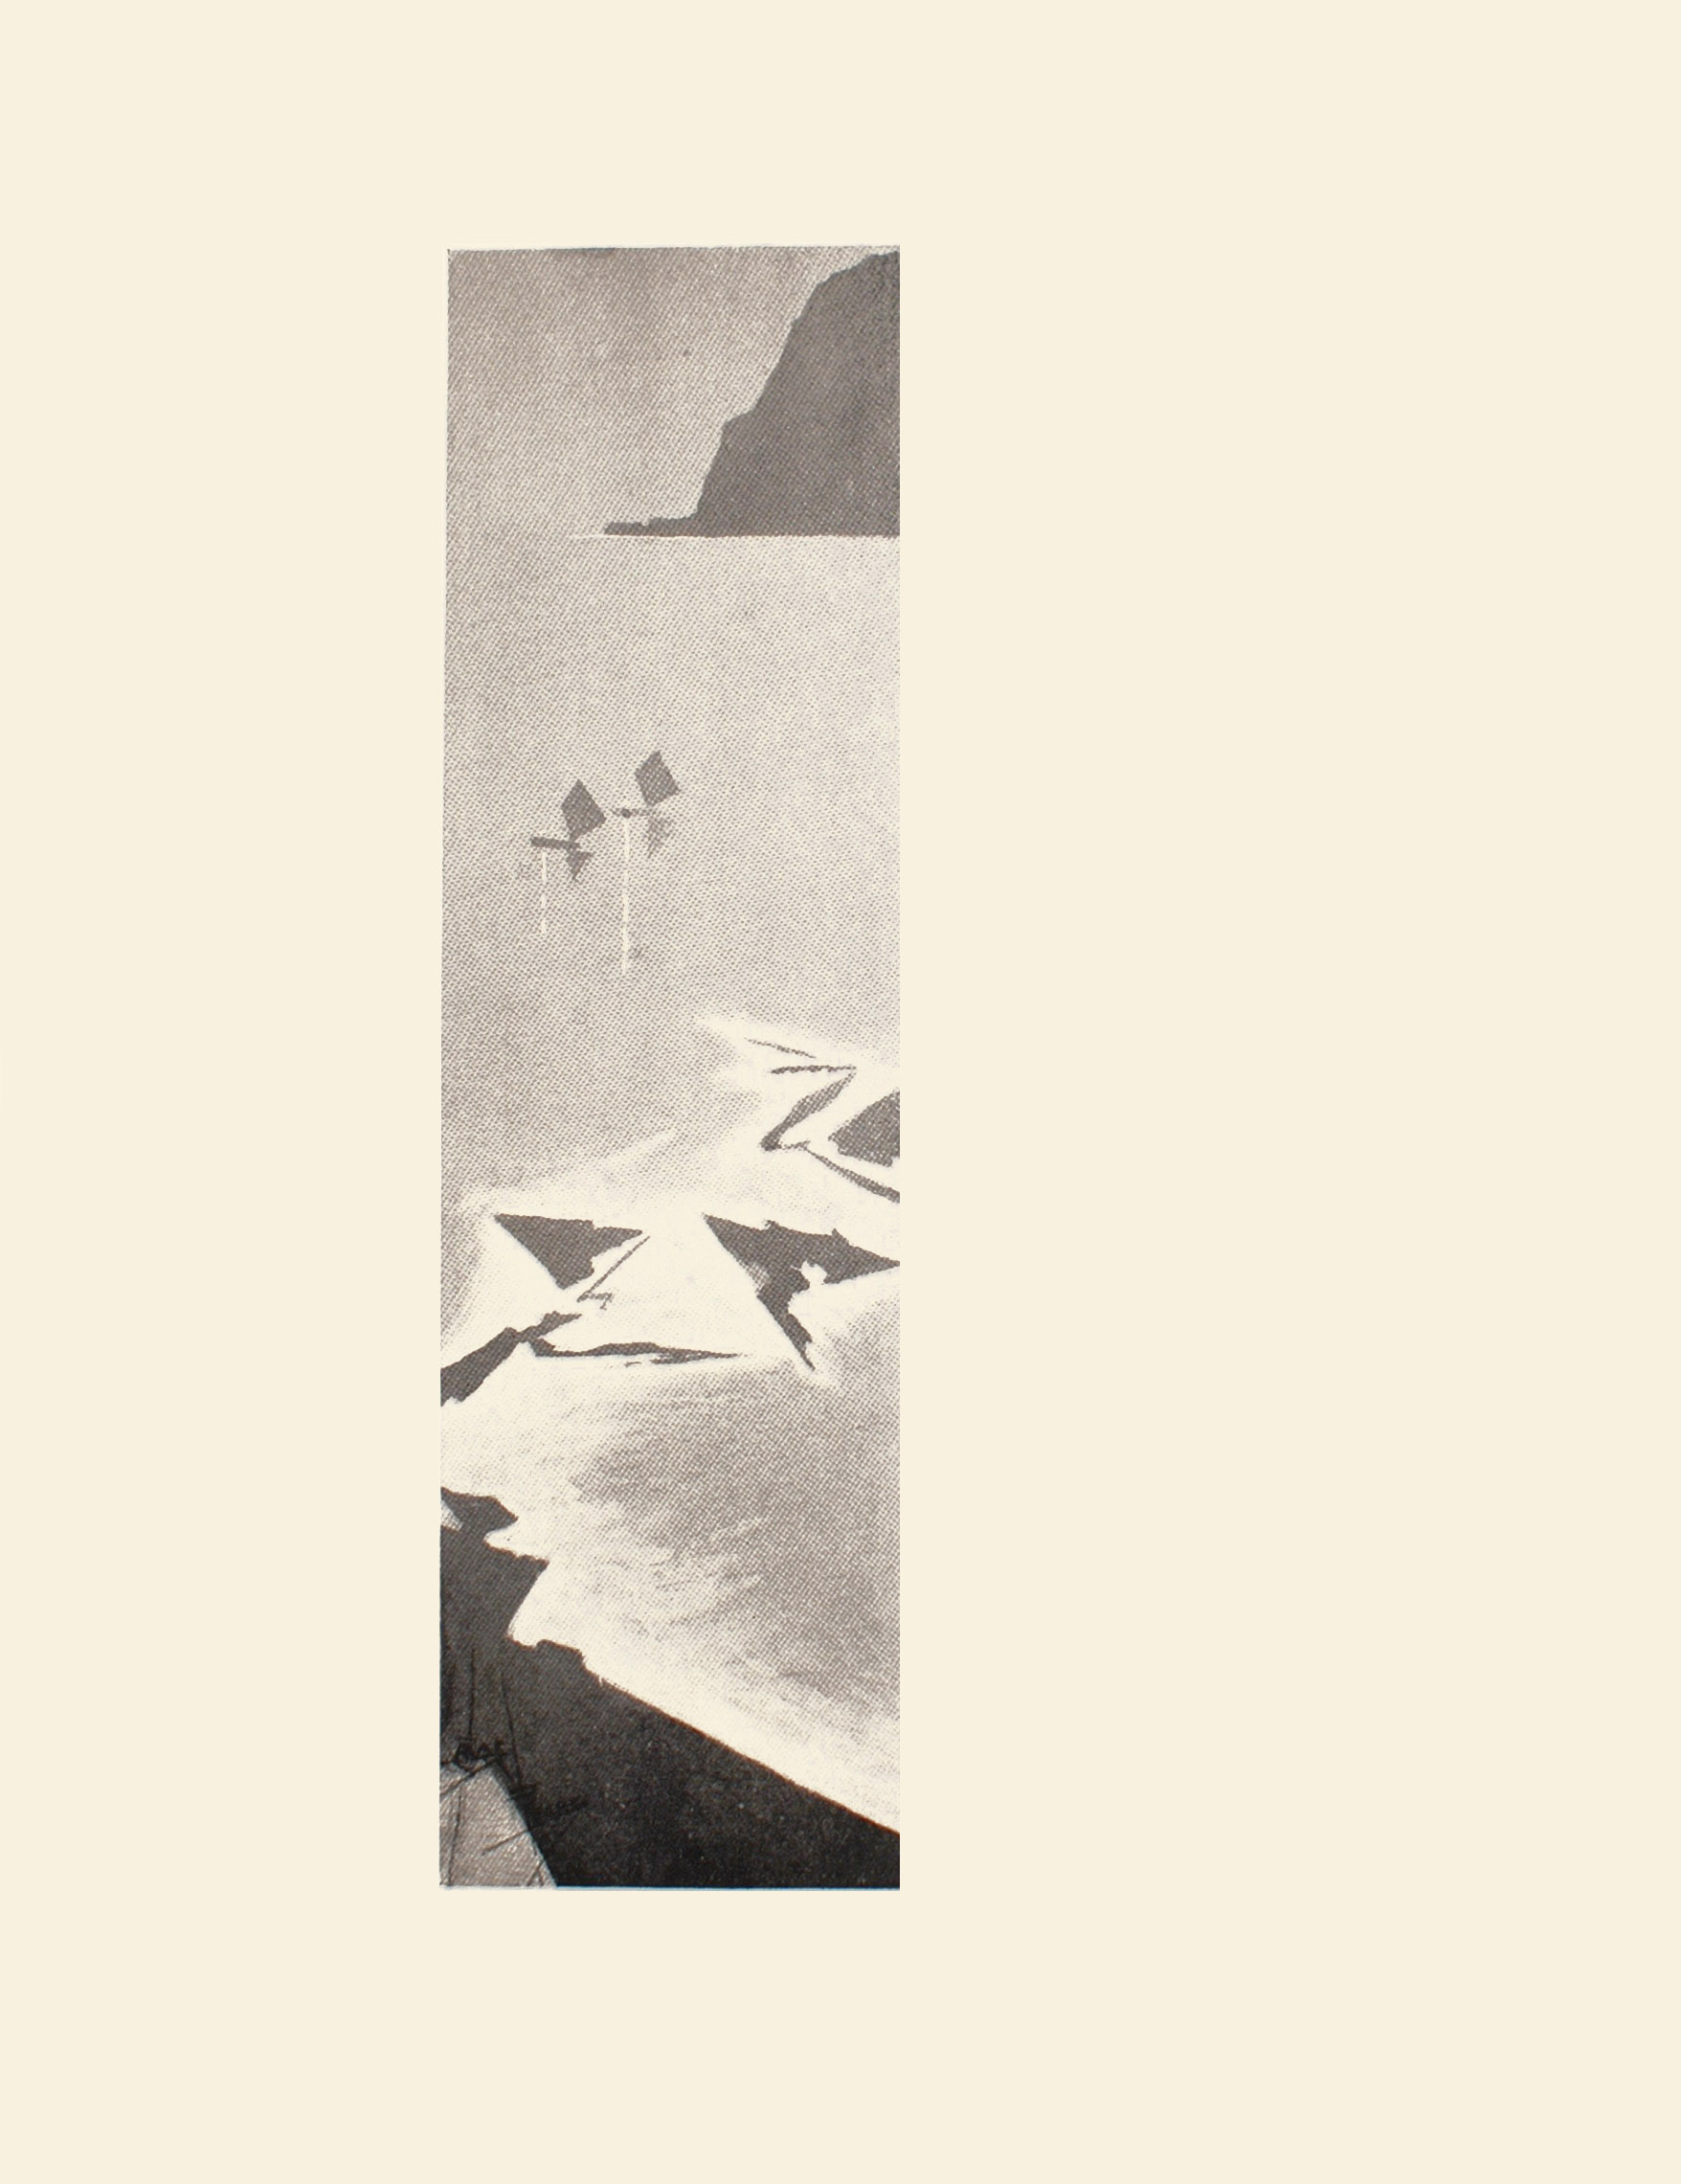 Image is a geometrical and angular rendering of two floating boats Their sails are diamond shaped with a reflection that can be seen in the water There are several arrow shaped islands in the middle ground The water is a lighter colour around these pieces of land A large cliff can be seen in the right background The artist signature is in the lower left corner The image is vertically displayed